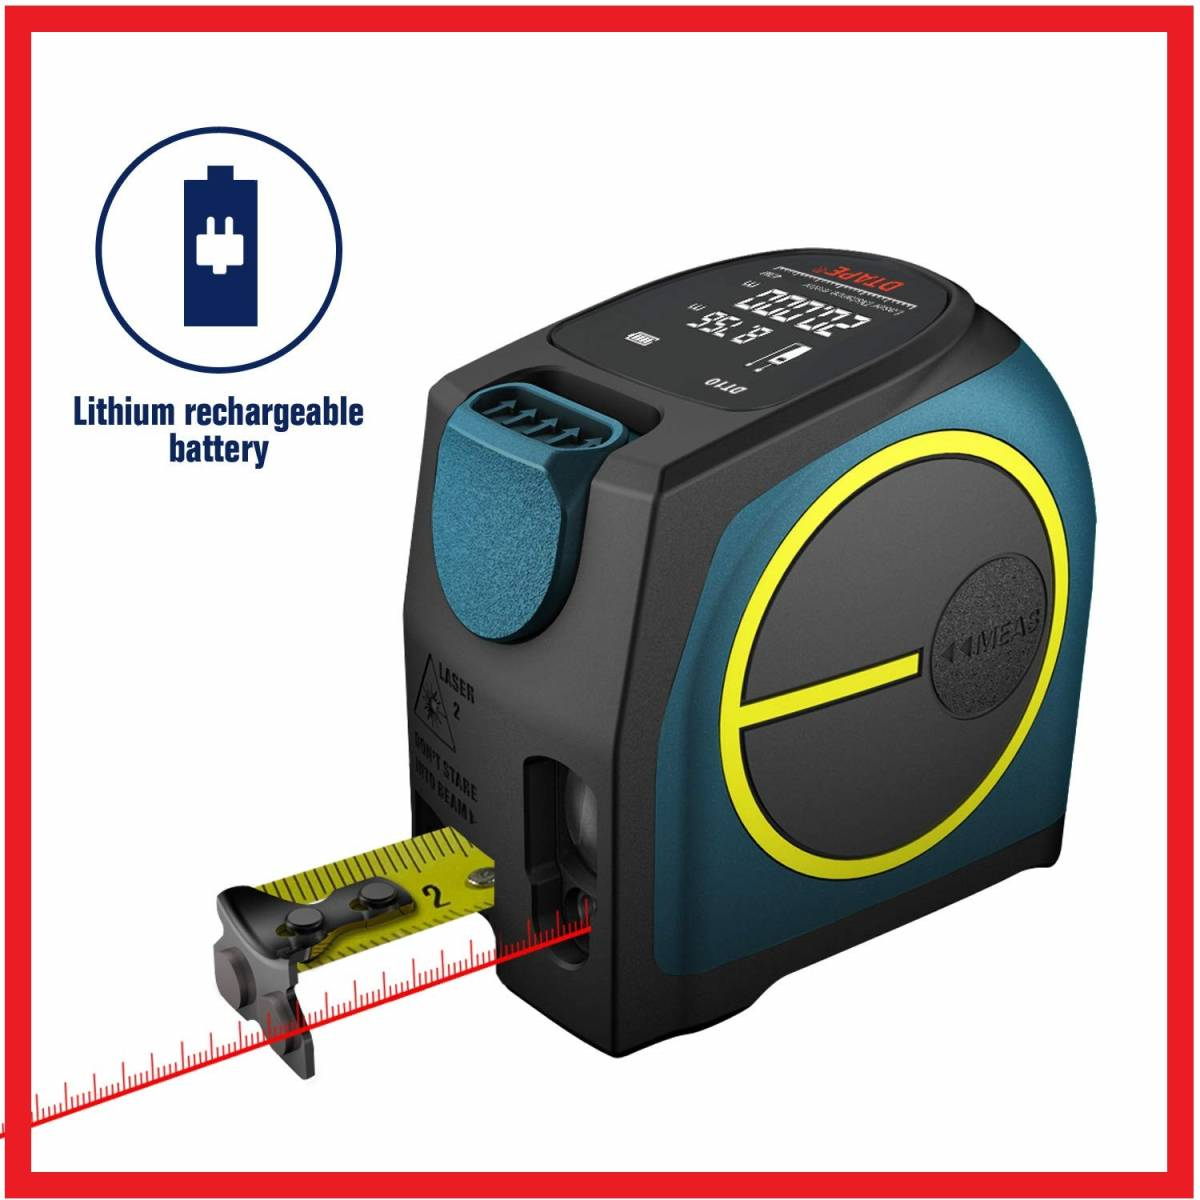 * new goods * unused * laser rangefinder maximum measurement distance 40M USB rechargeable color LCD display attaching tape measure laser rangefinder built-in distance space any two point measurement